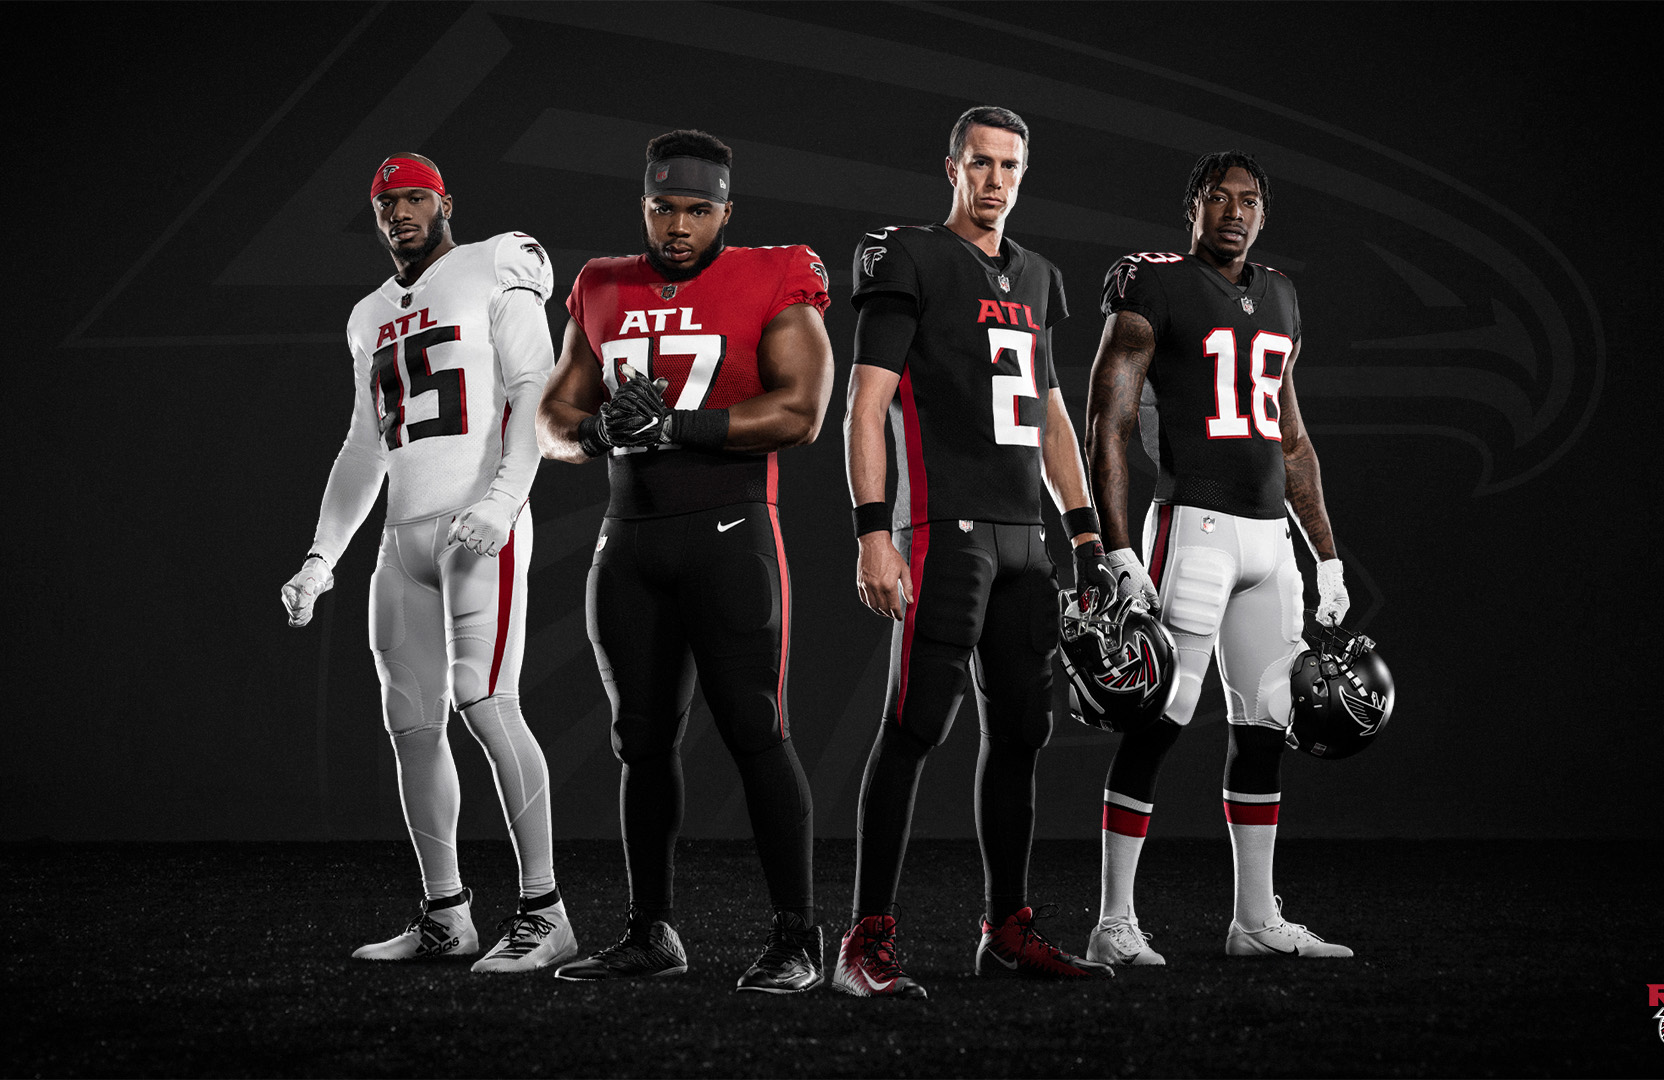 Atlanta Falcons Unveil New Uniforms Ahead Of Schedule Following Leaks